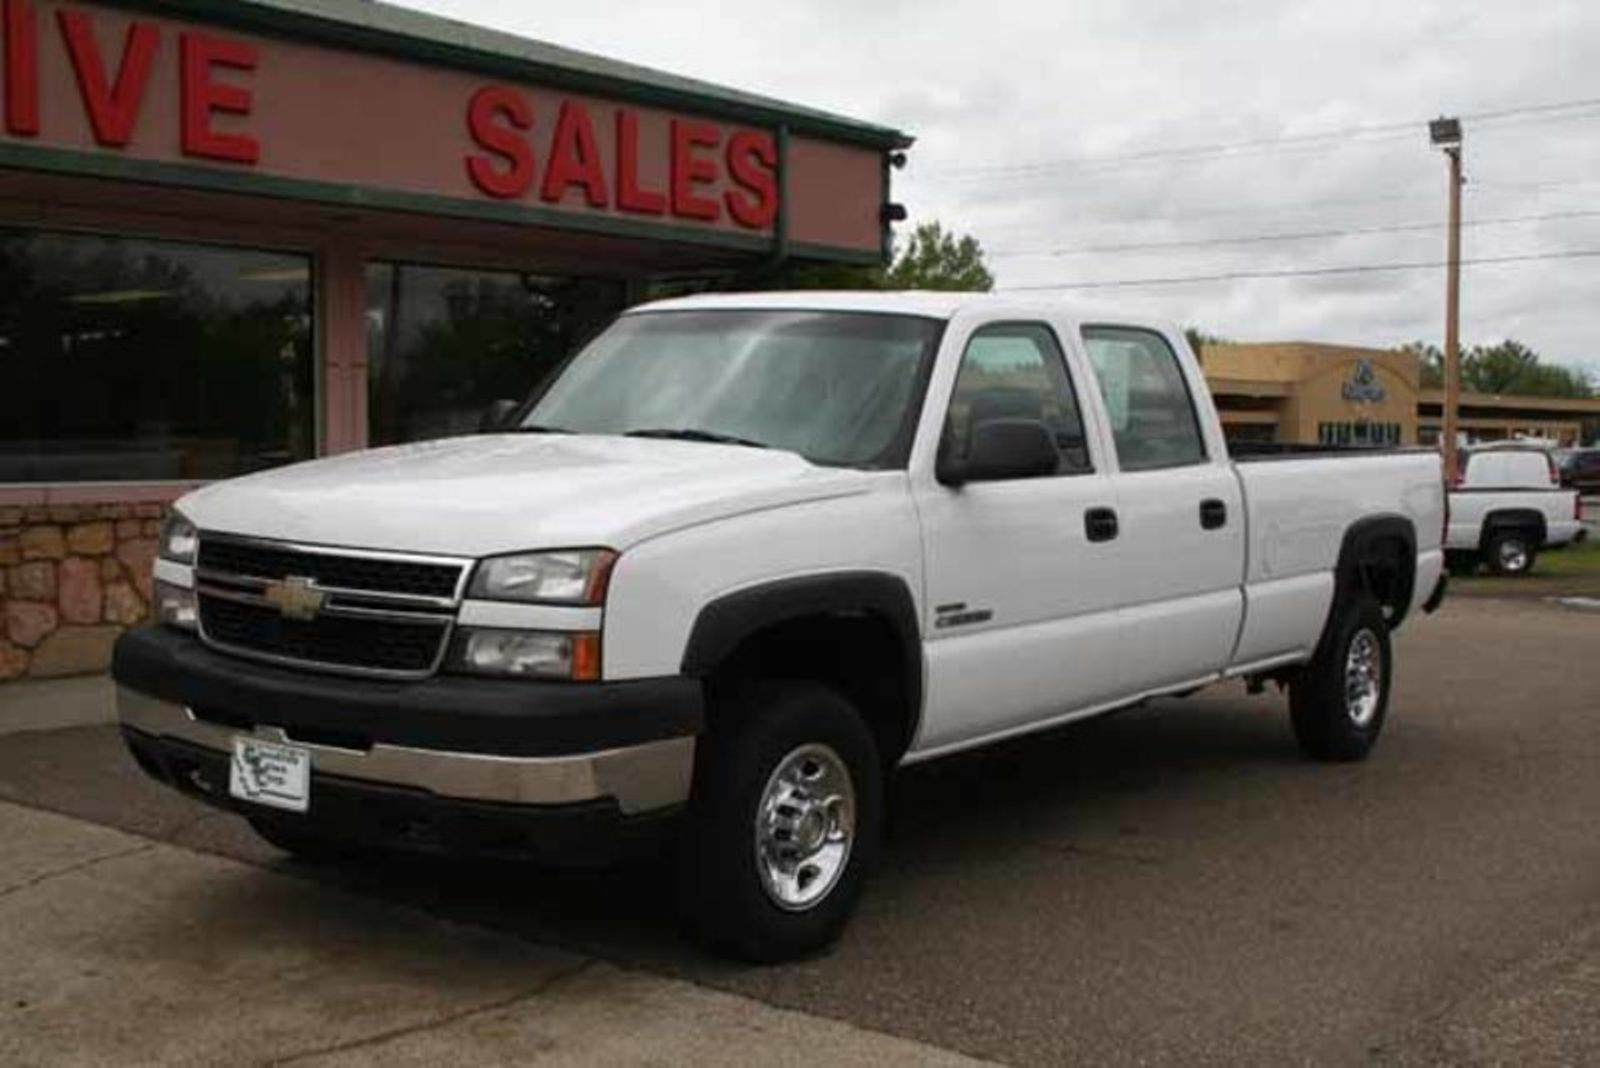 2007 chevrolet silverado 2500hd classic work truck glendive mt glendive sales corp. Black Bedroom Furniture Sets. Home Design Ideas